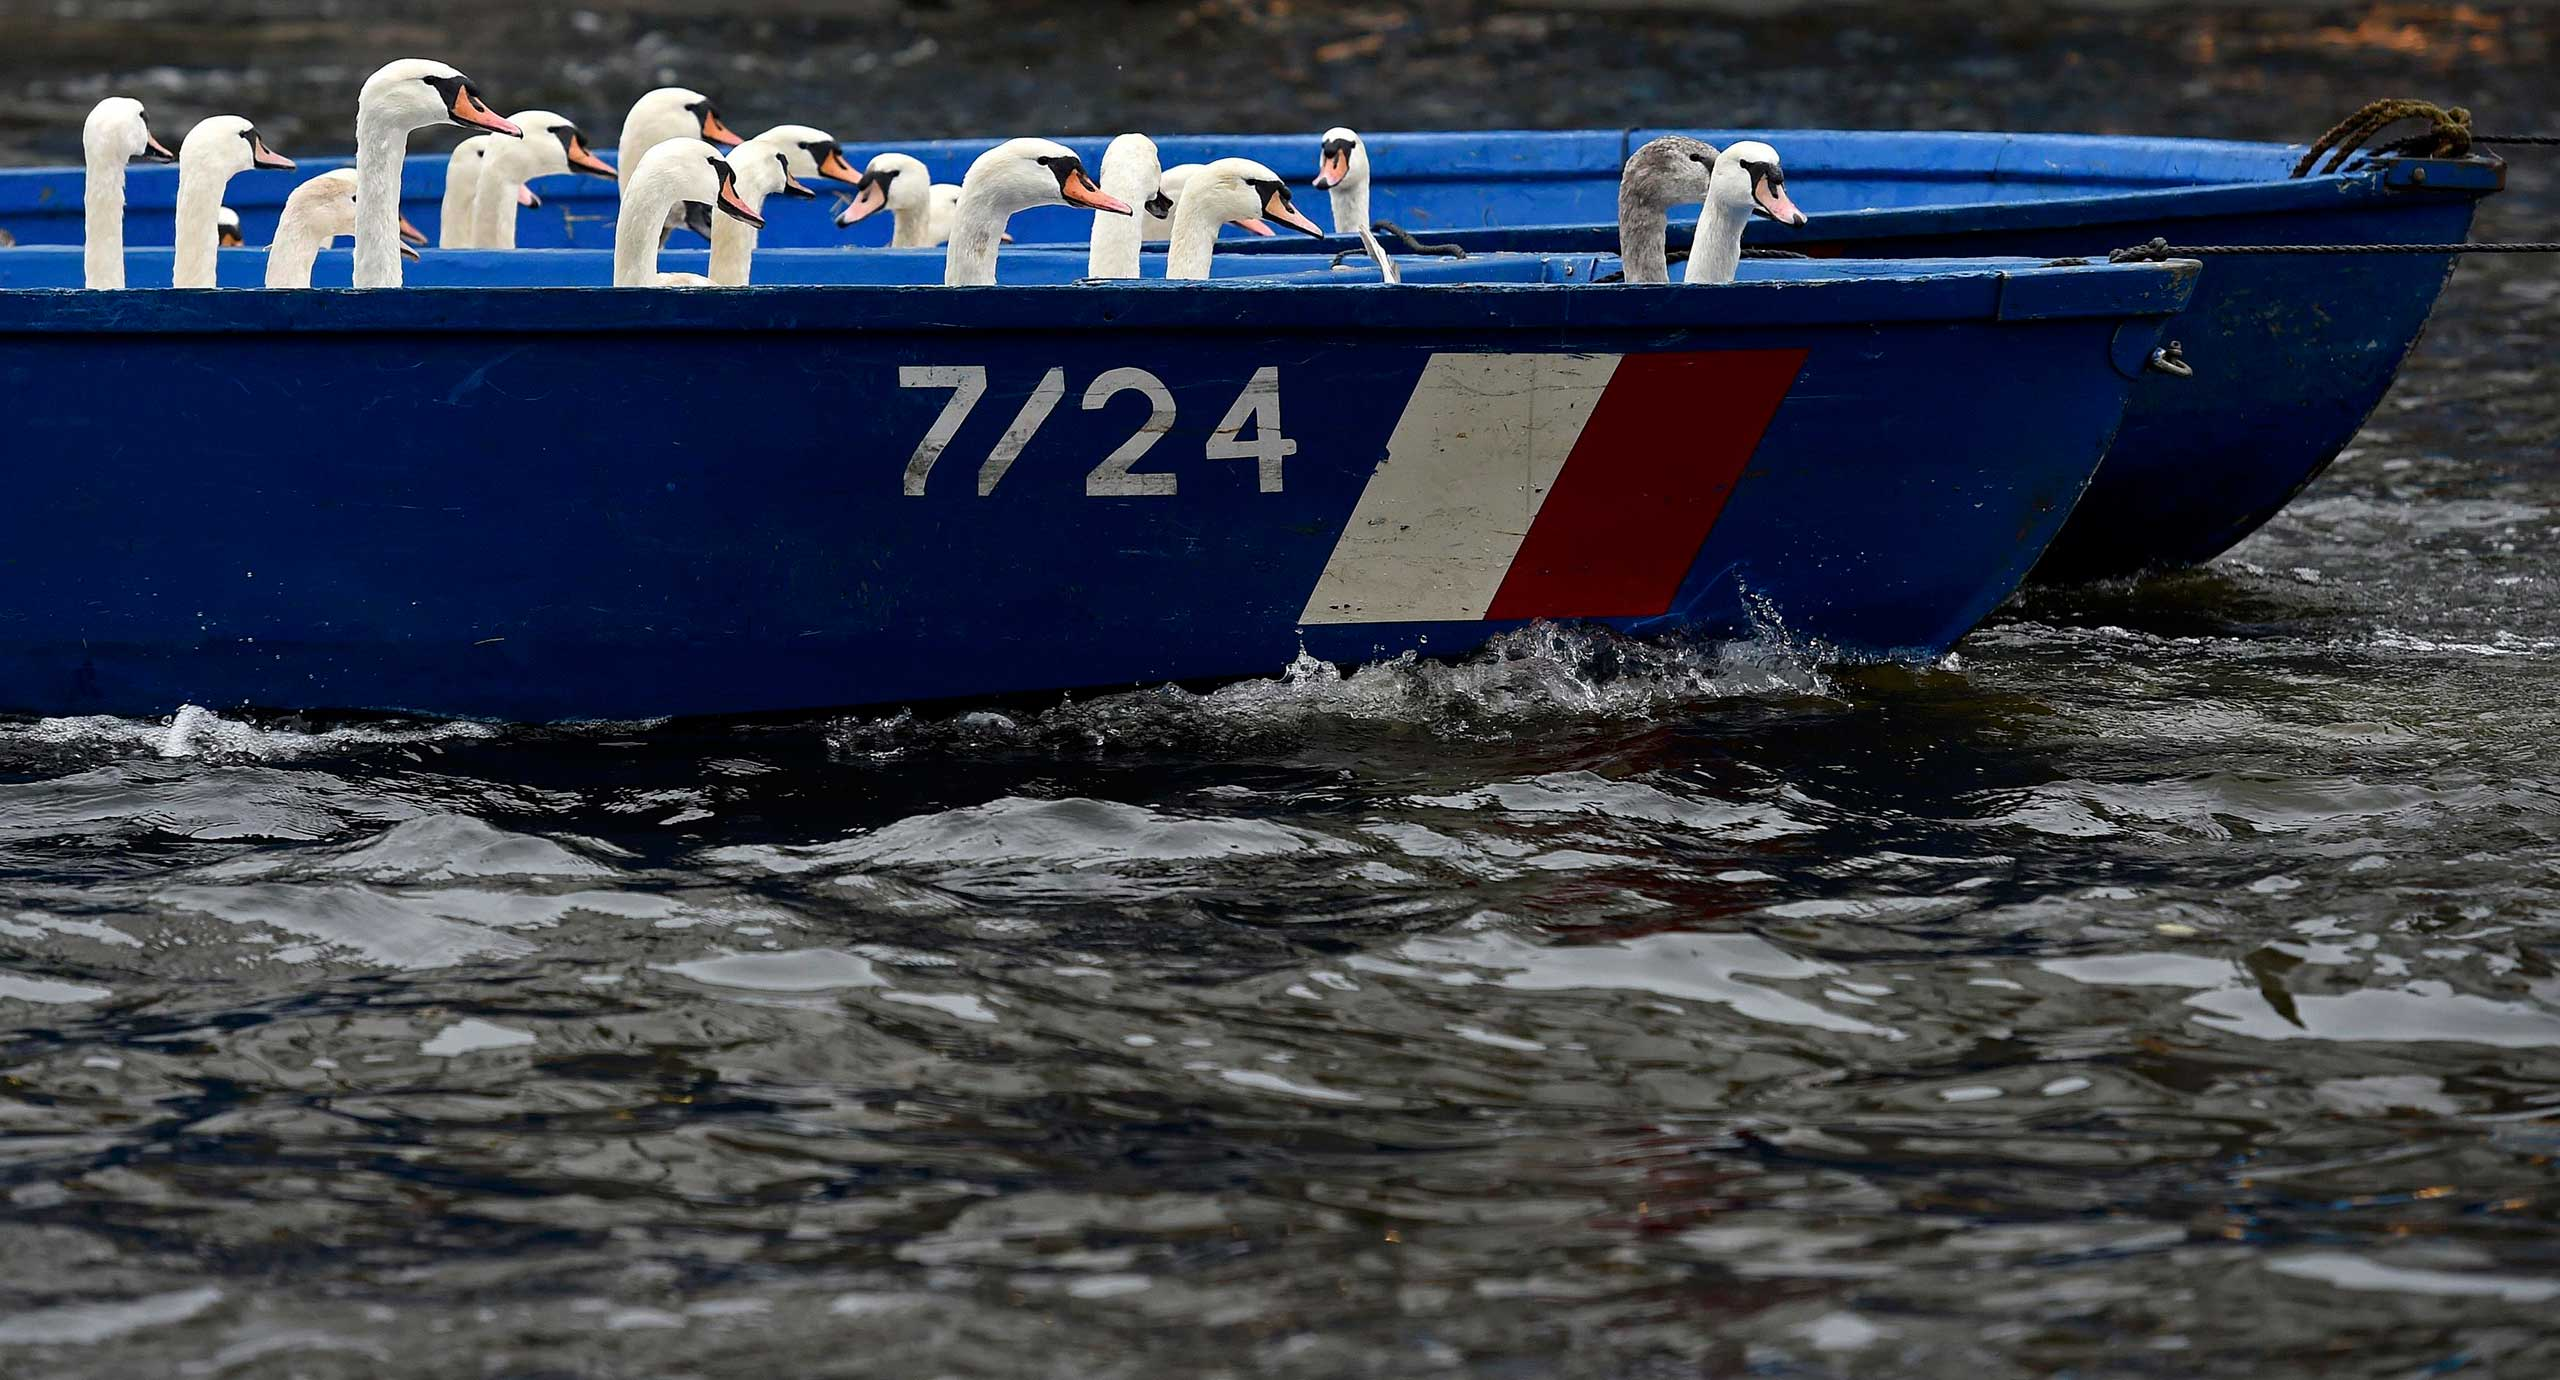 Swans sit in a boat after they were rounded up from Hamburg's lake Alster, Nov. 18, 2014.